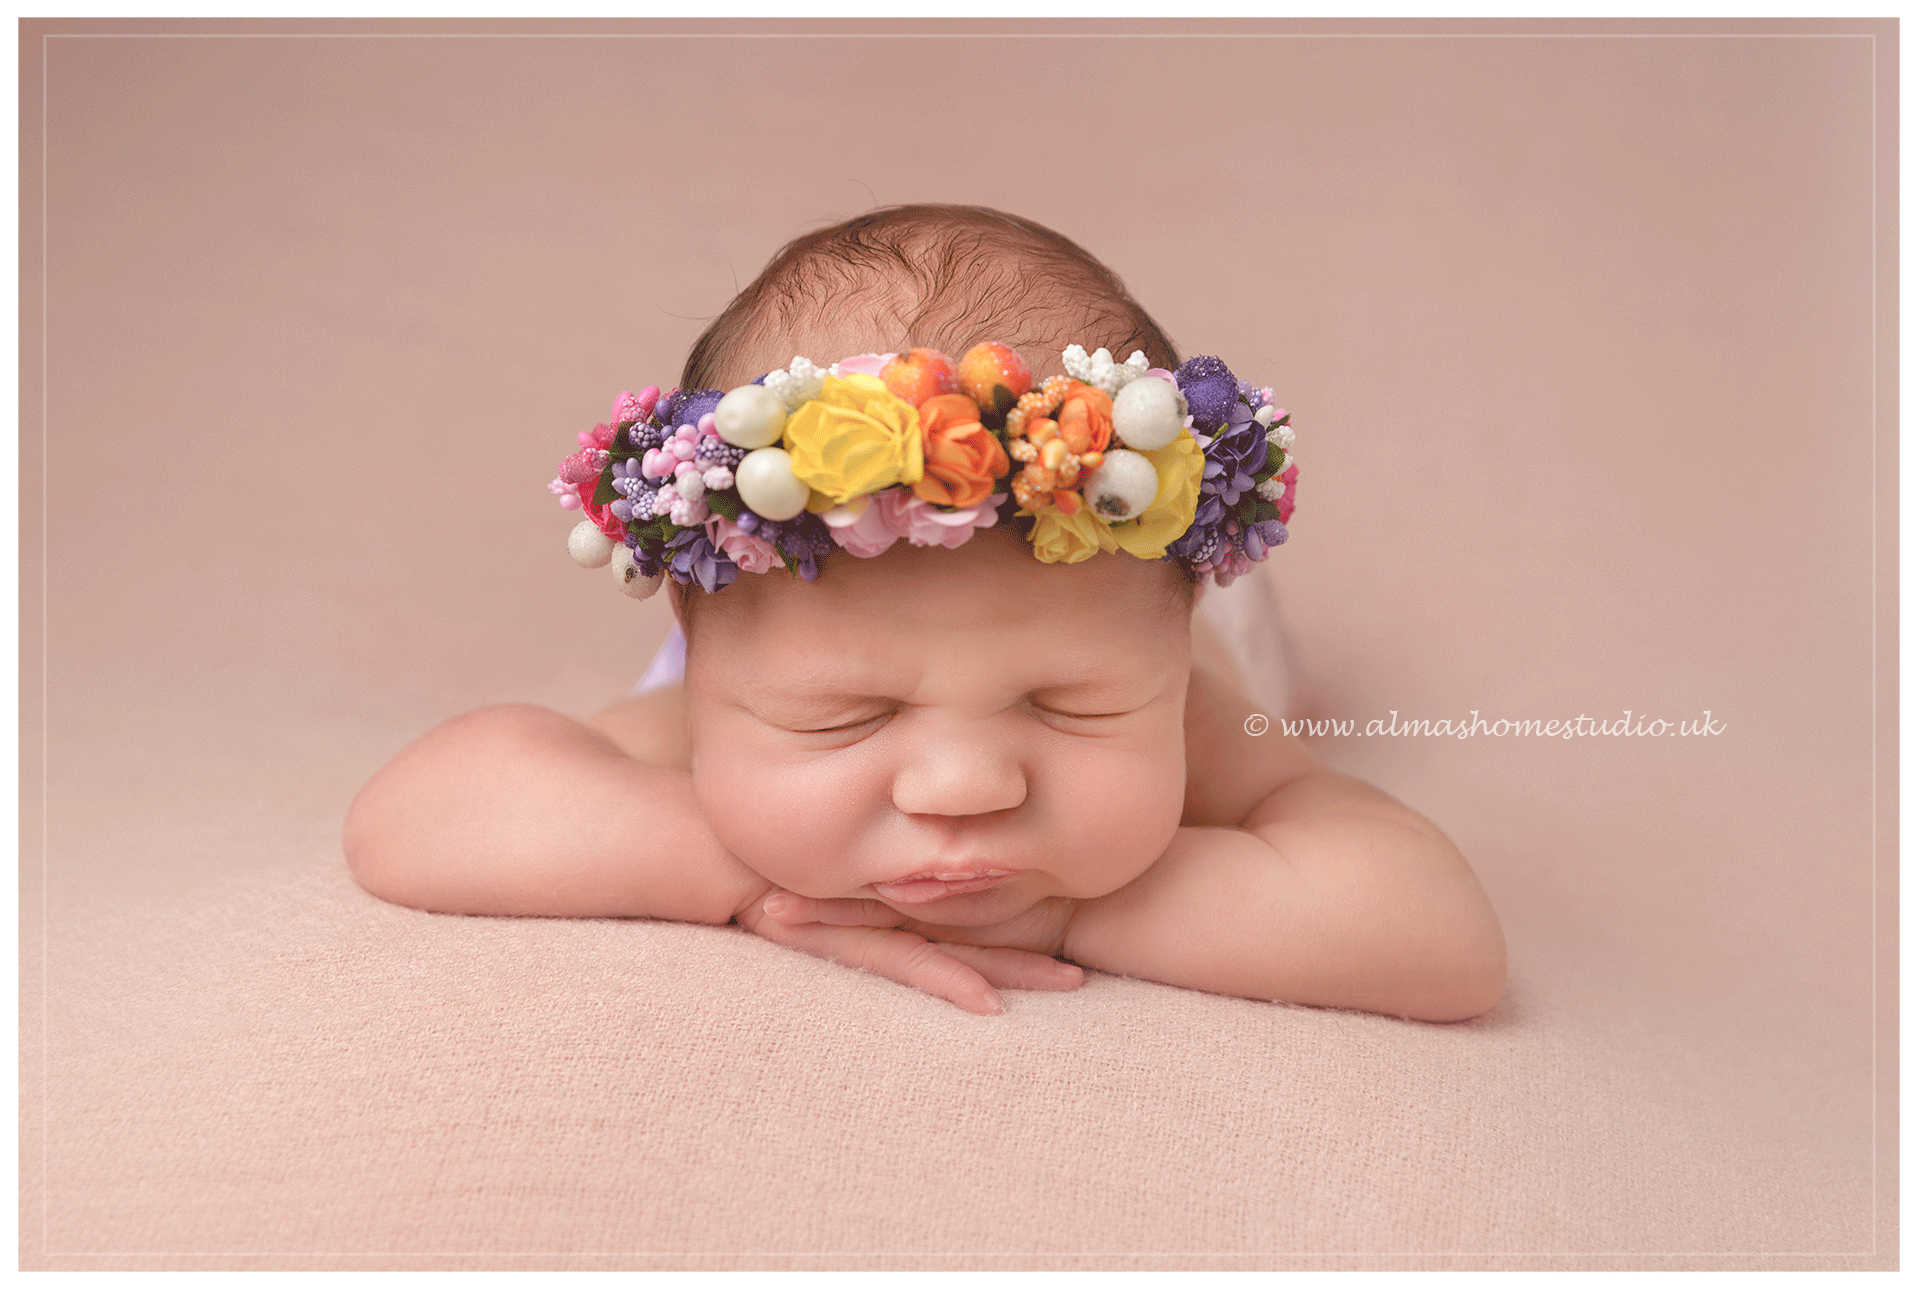 Alma's Home Studio Newborn photographer based in Blandford Forum, Dorset